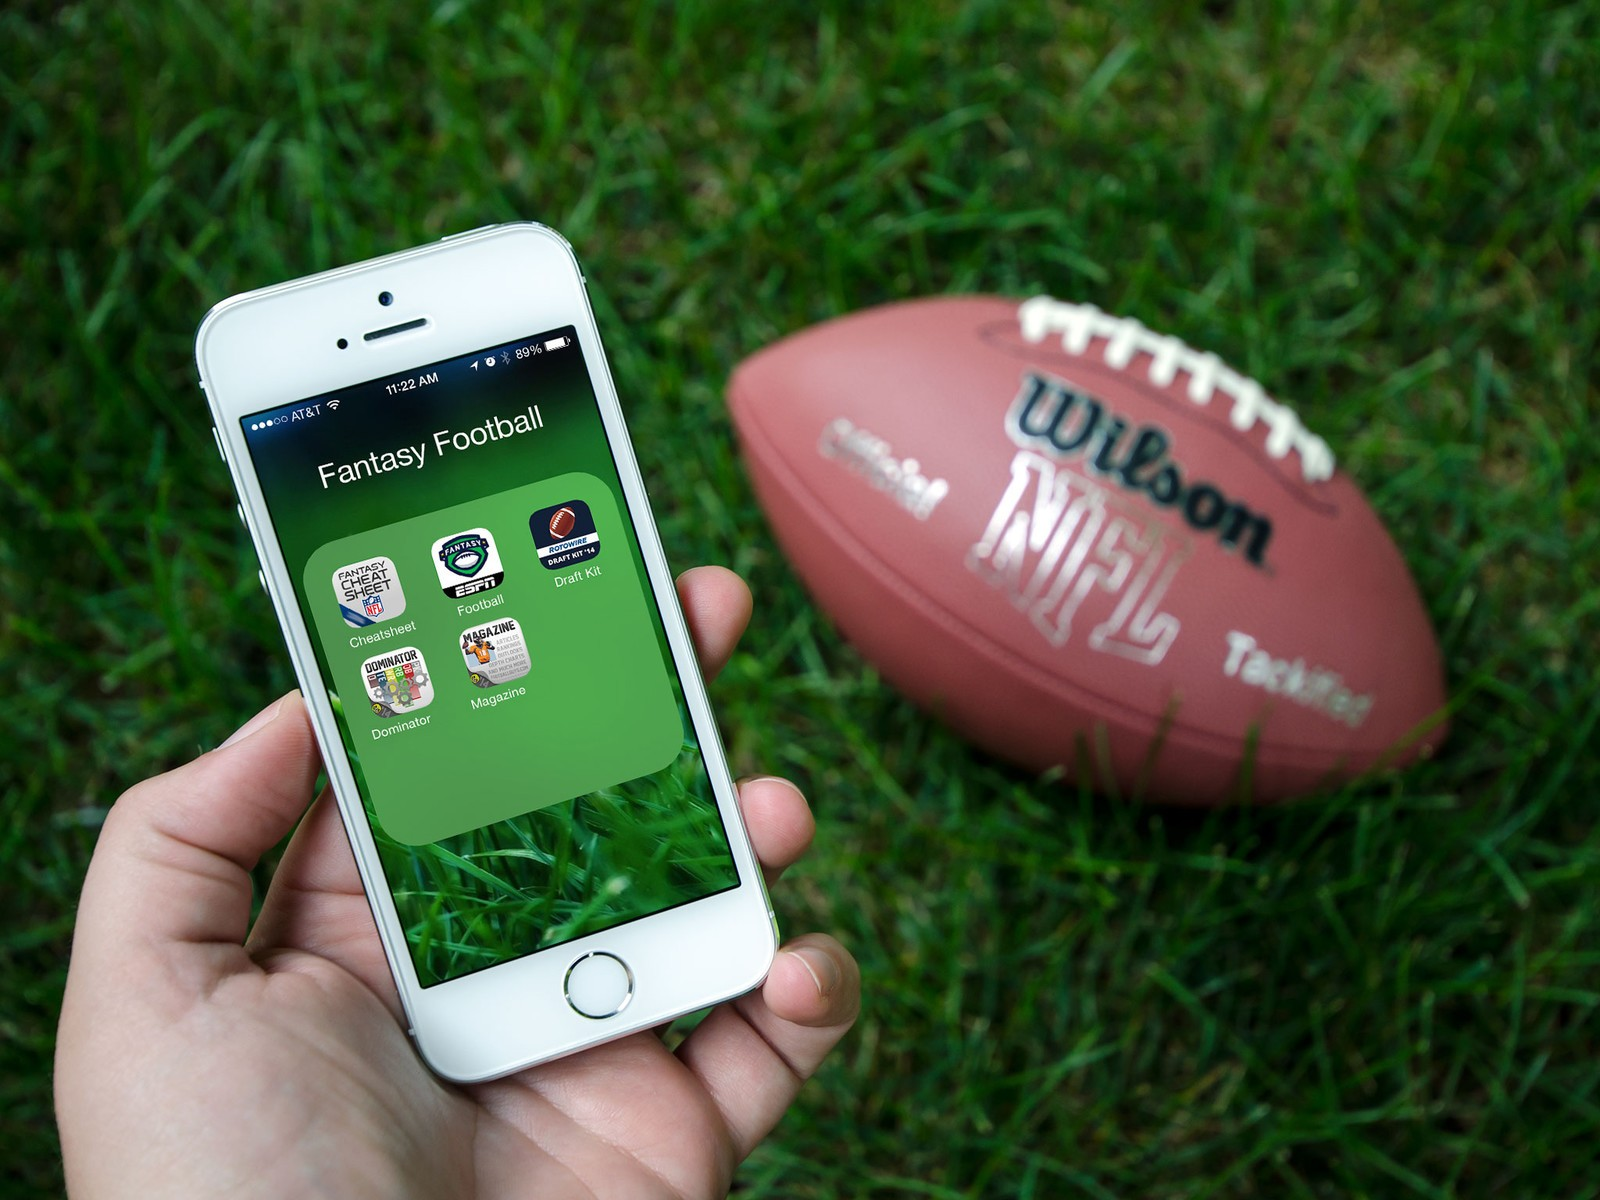 81e7b81941f In search of the best iPhone apps to help you track your fantasy football  team throughout the 2017 season? There are lots of NFL apps in the App Store  that ...